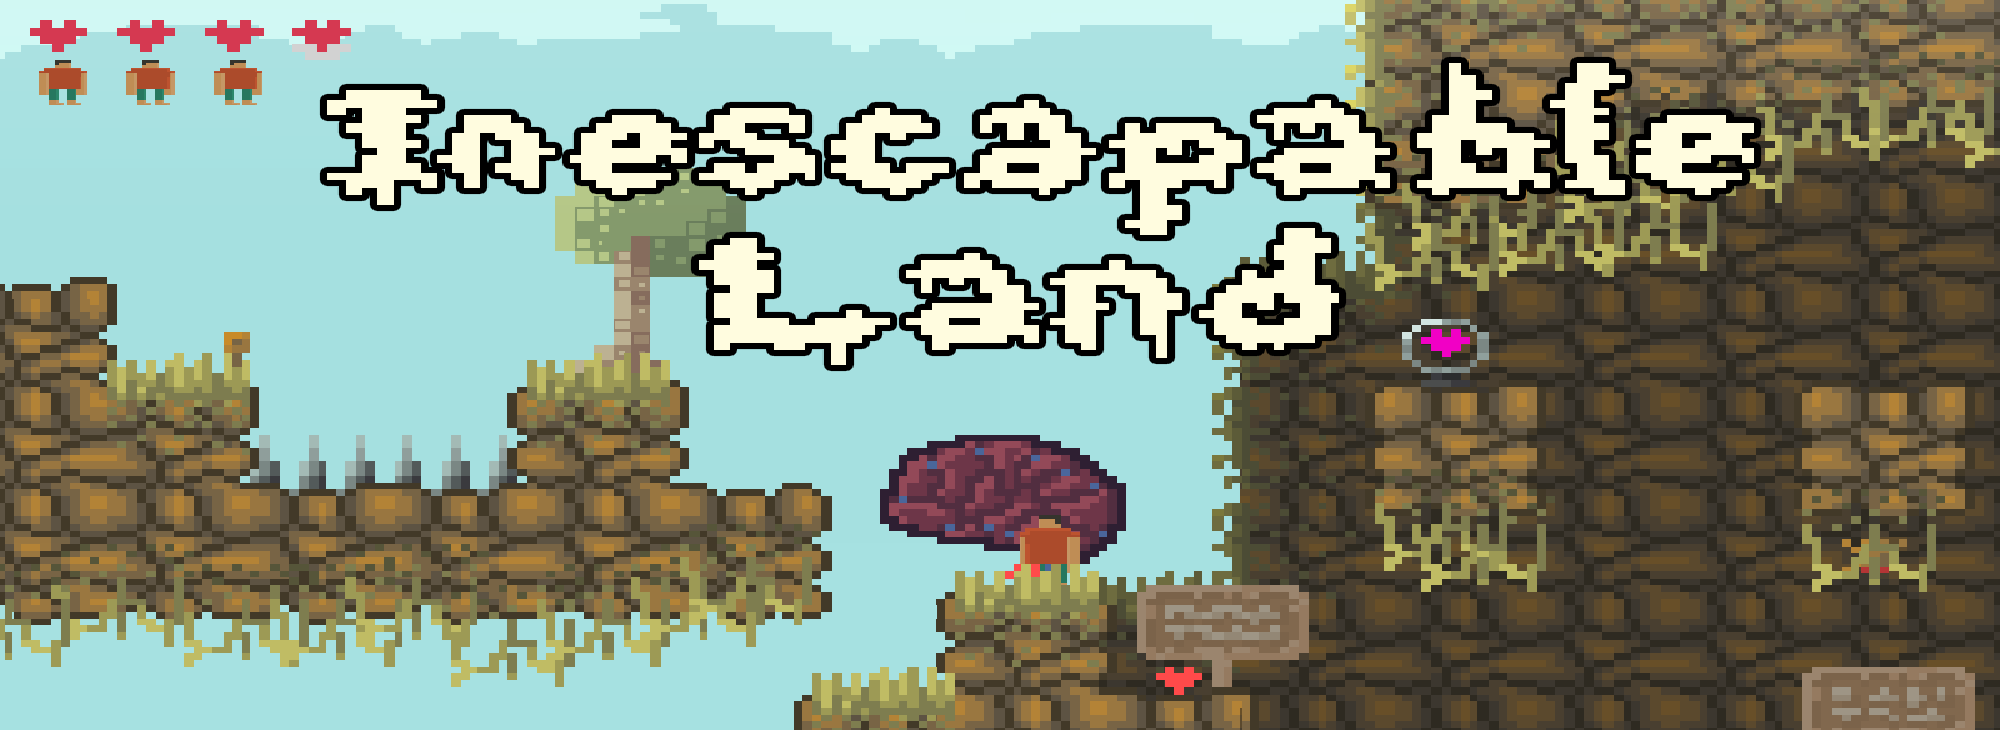 Inescapable Land